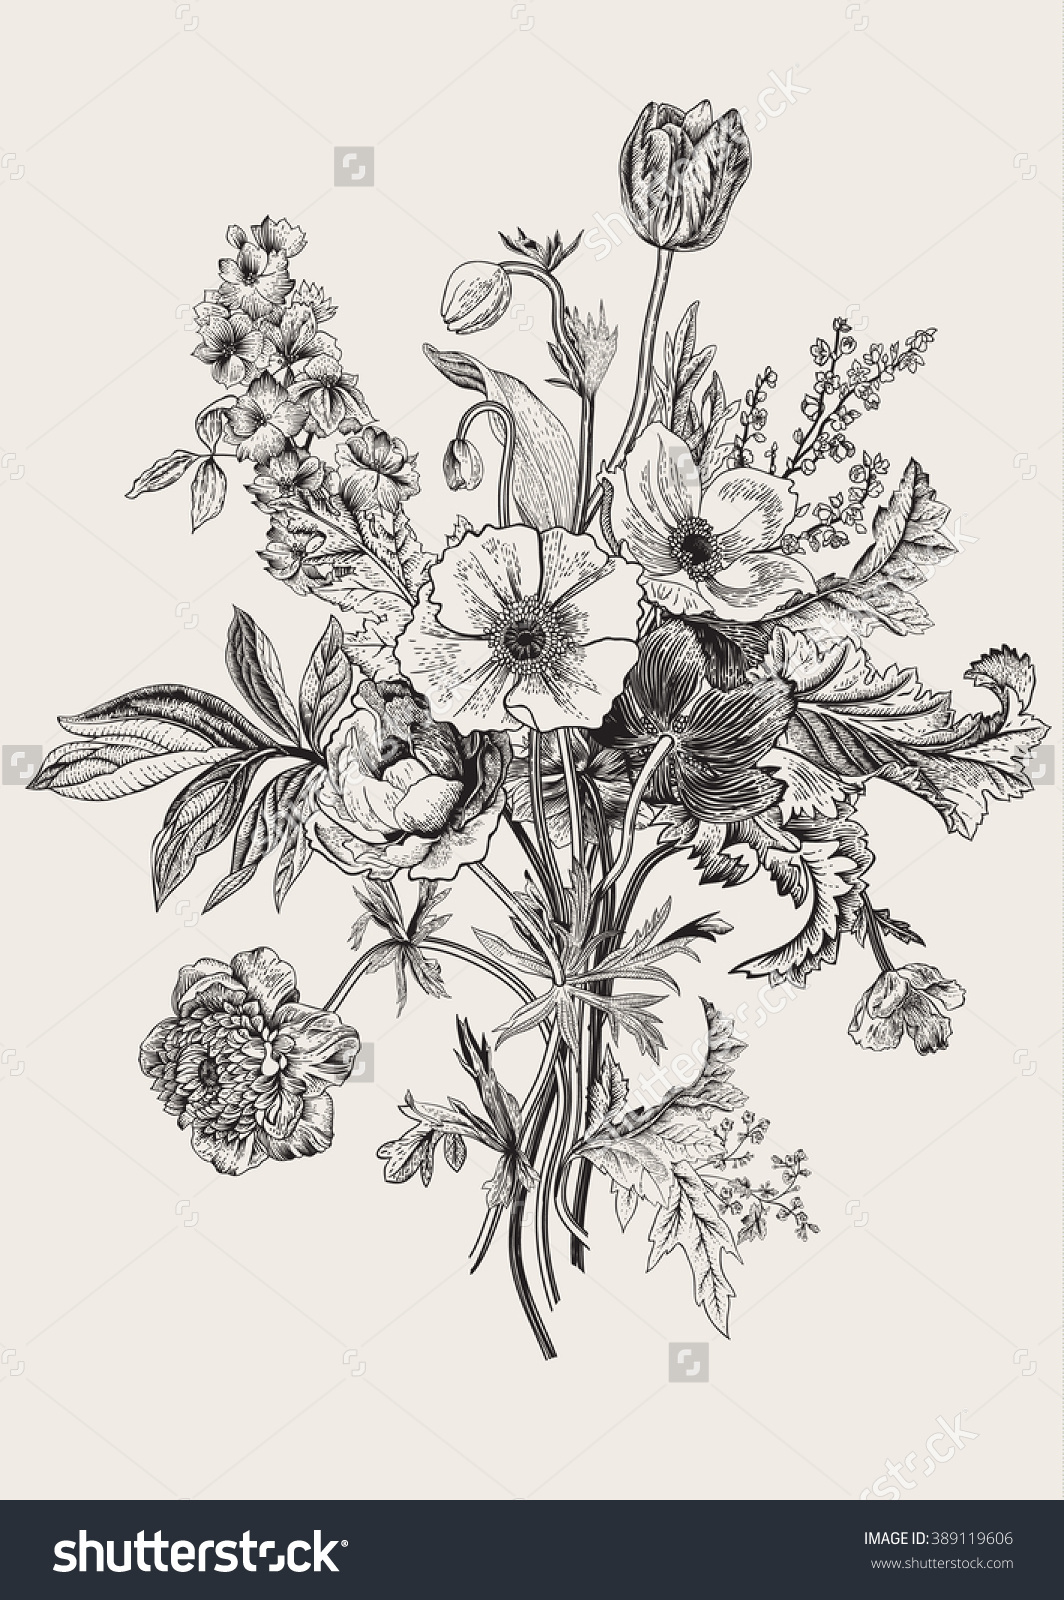 Drawn poppy black and white Flowers lilies Victorian drawing of